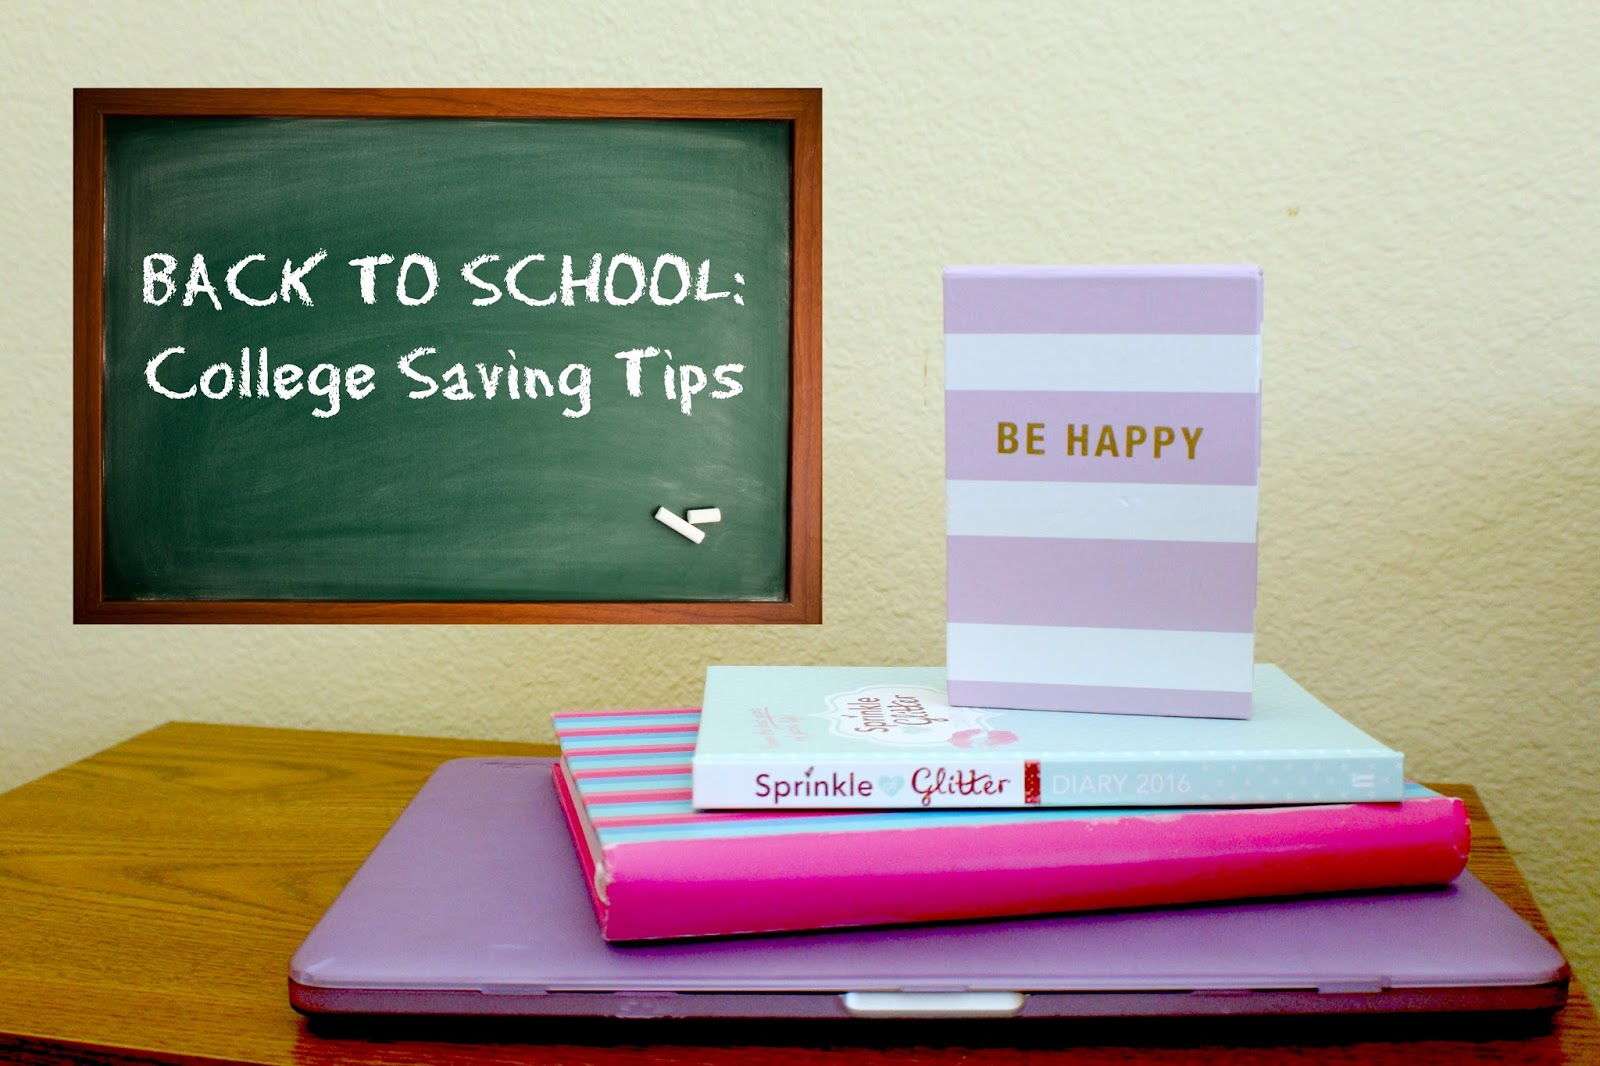 Back To School: College Saving Tips